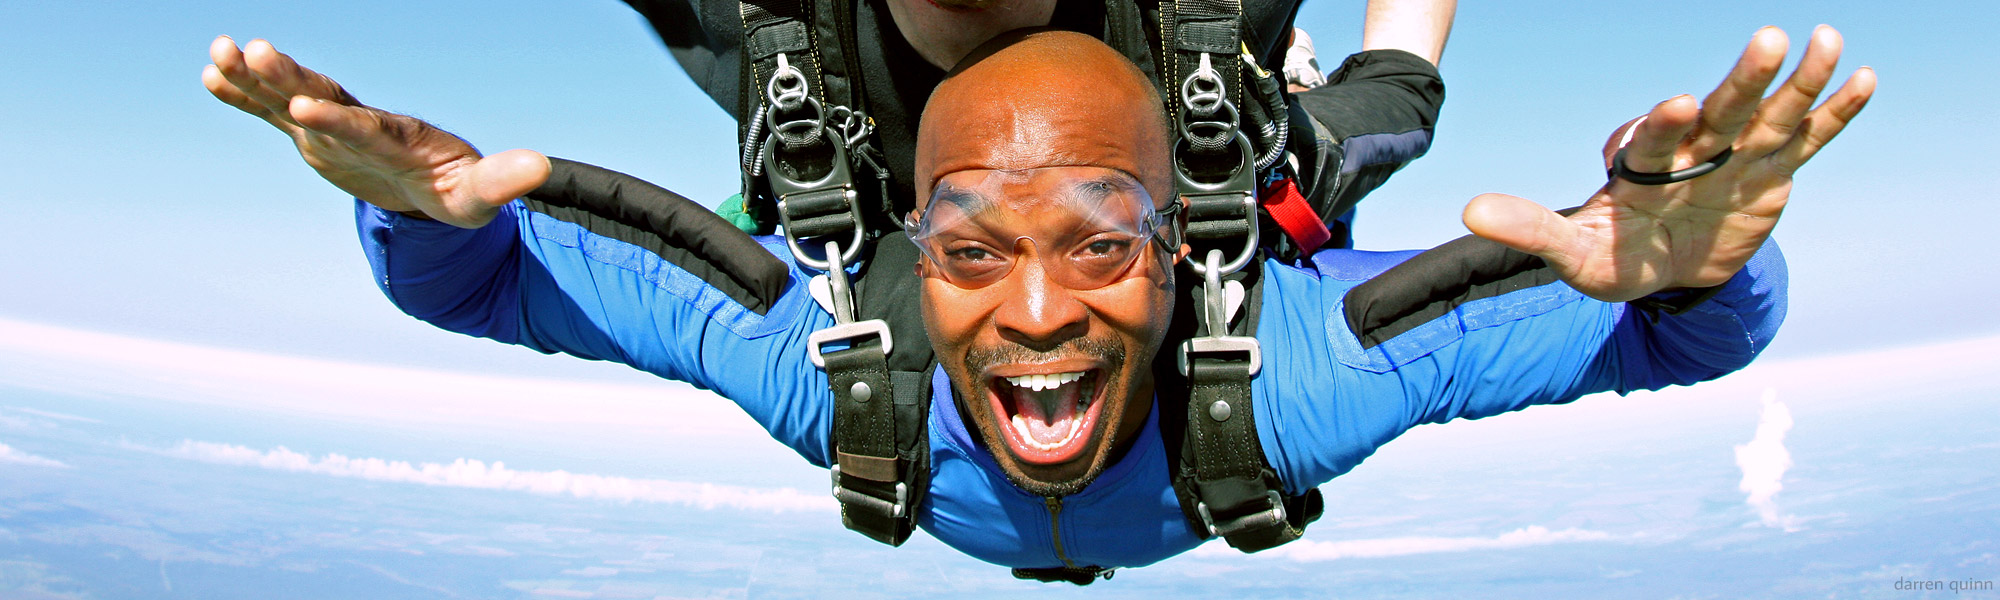 Tandem skydiving photos/video